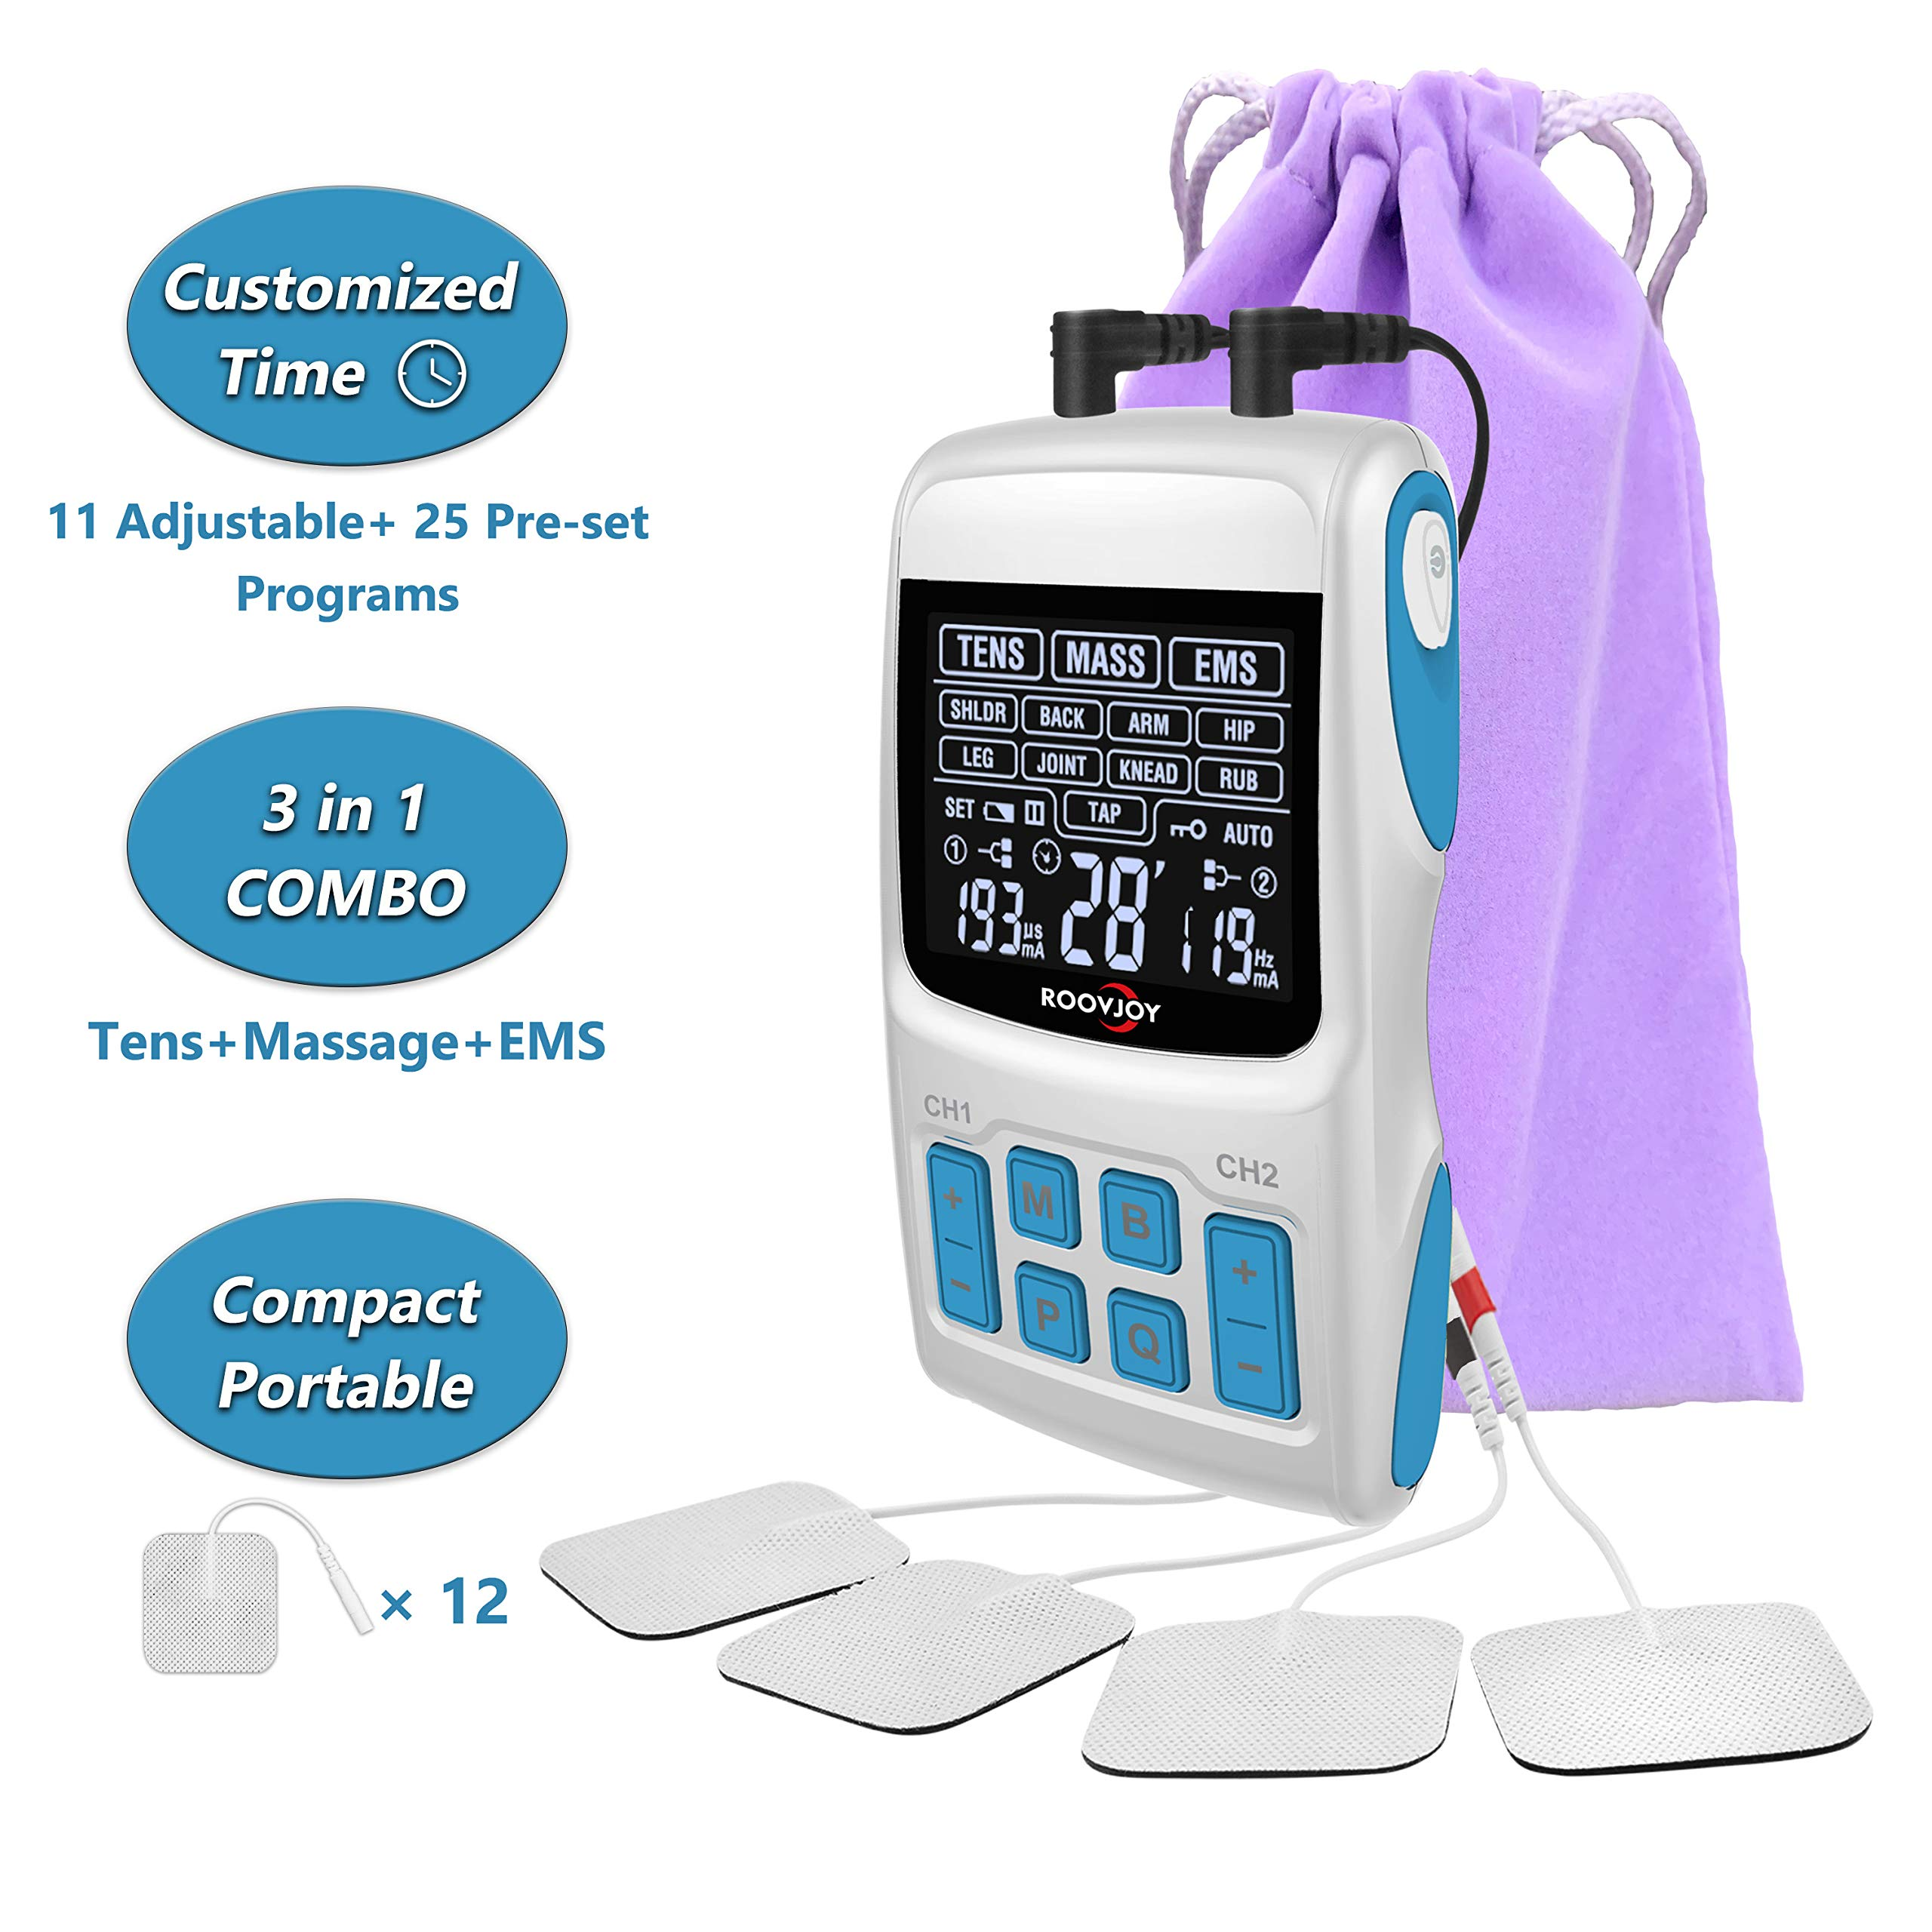 ROOVJOY Combo TENS Unit EMS Muscle Stimulator Pulse Massager 3 in 1 Back Pain Relief Dual Channles 36 Modes Electric Device Electrodes Therapy Accupoint Pads Machine by roovjoy